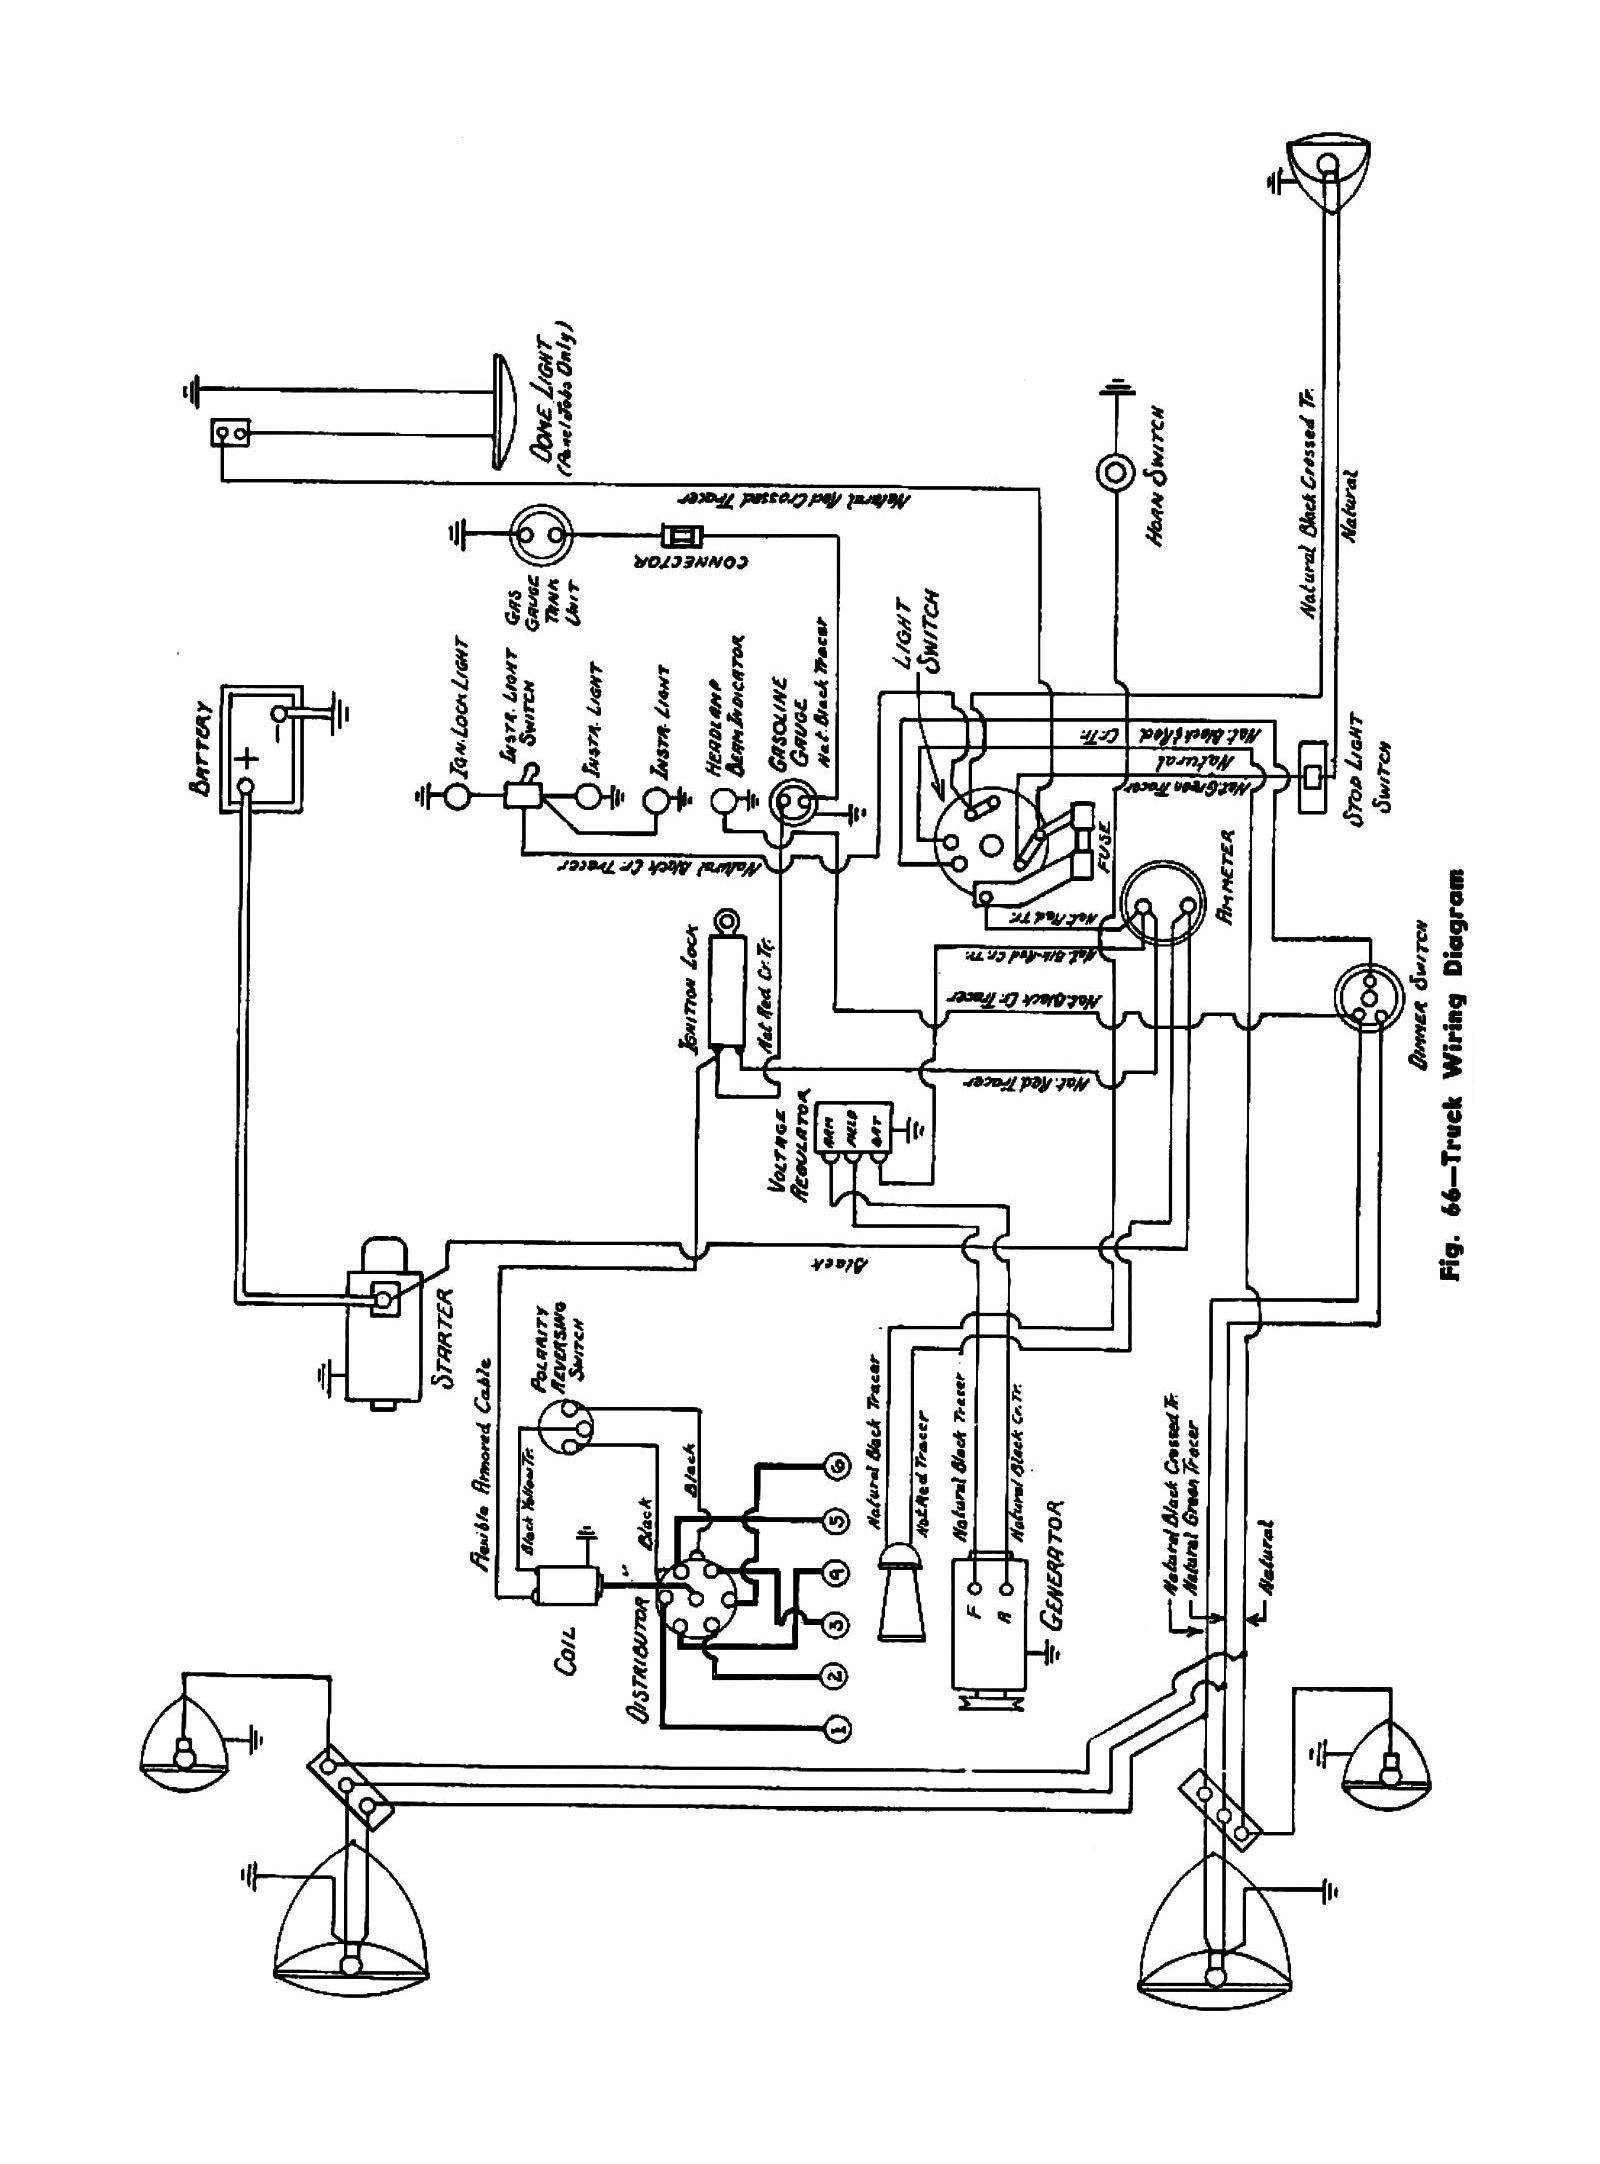 99 Cavalier Electrical Wiring on 1961 chevy c10 wiring diagram